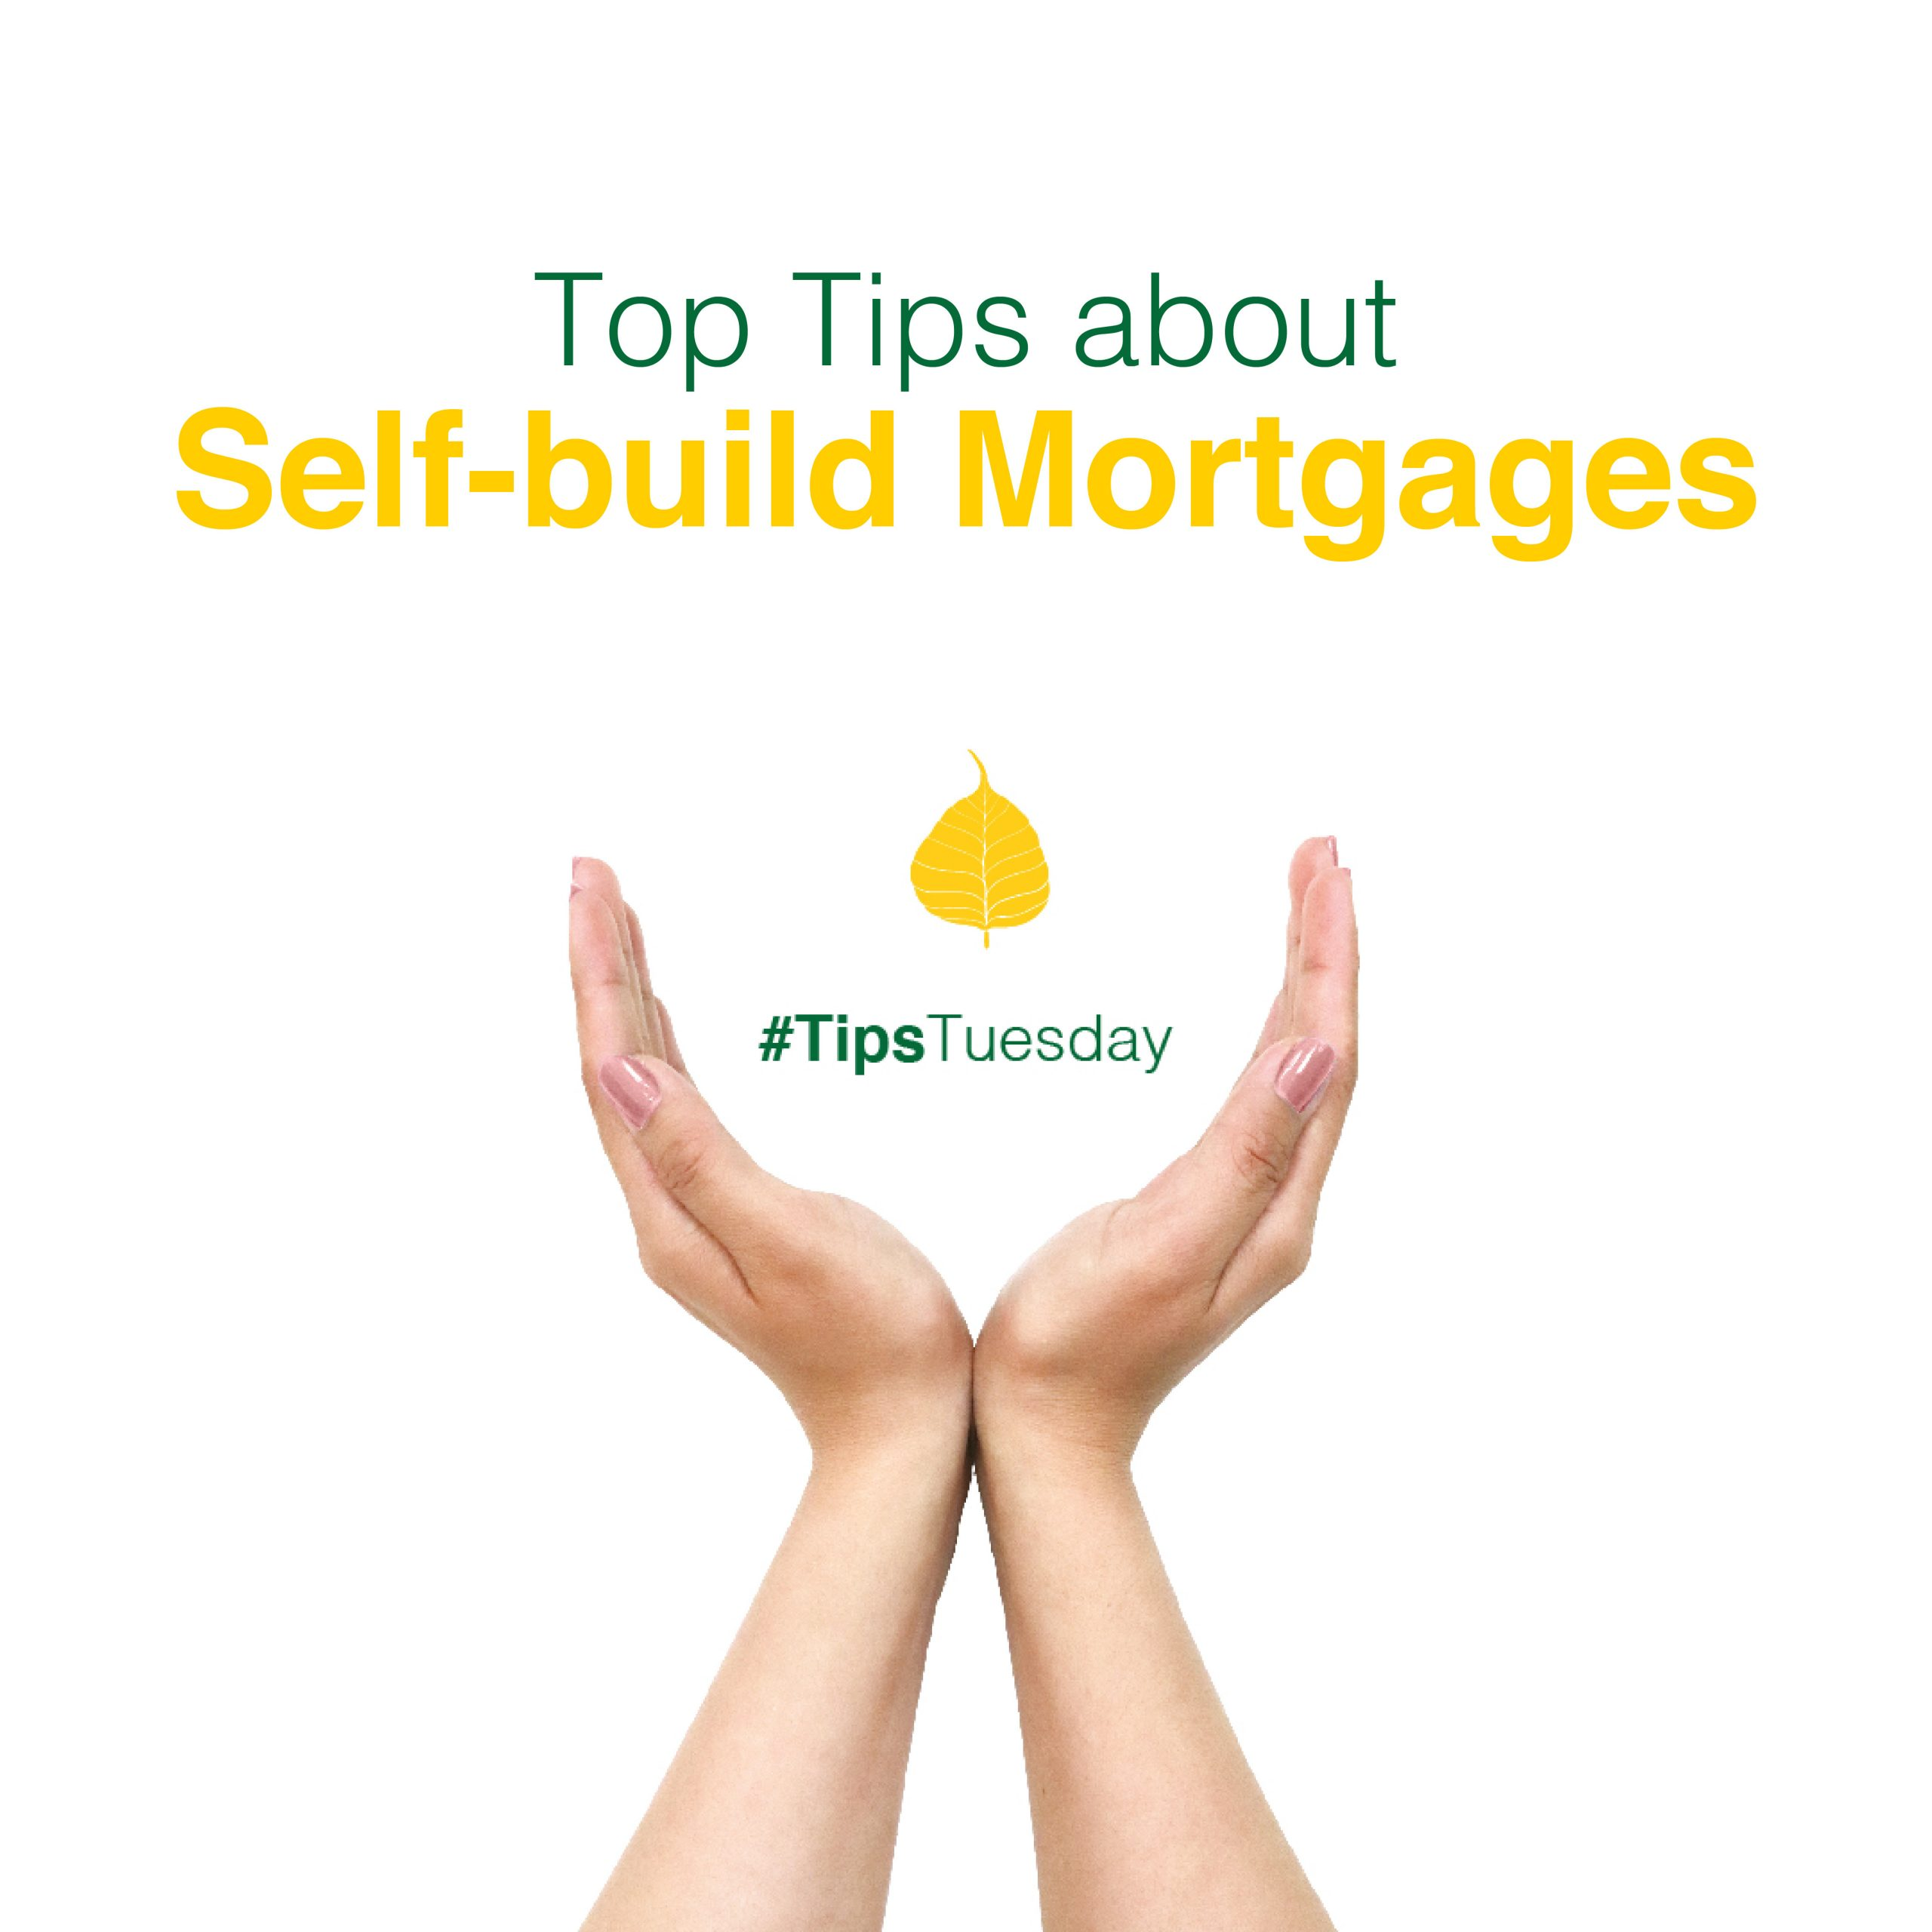 Top Tips About Self-Build Mortgages